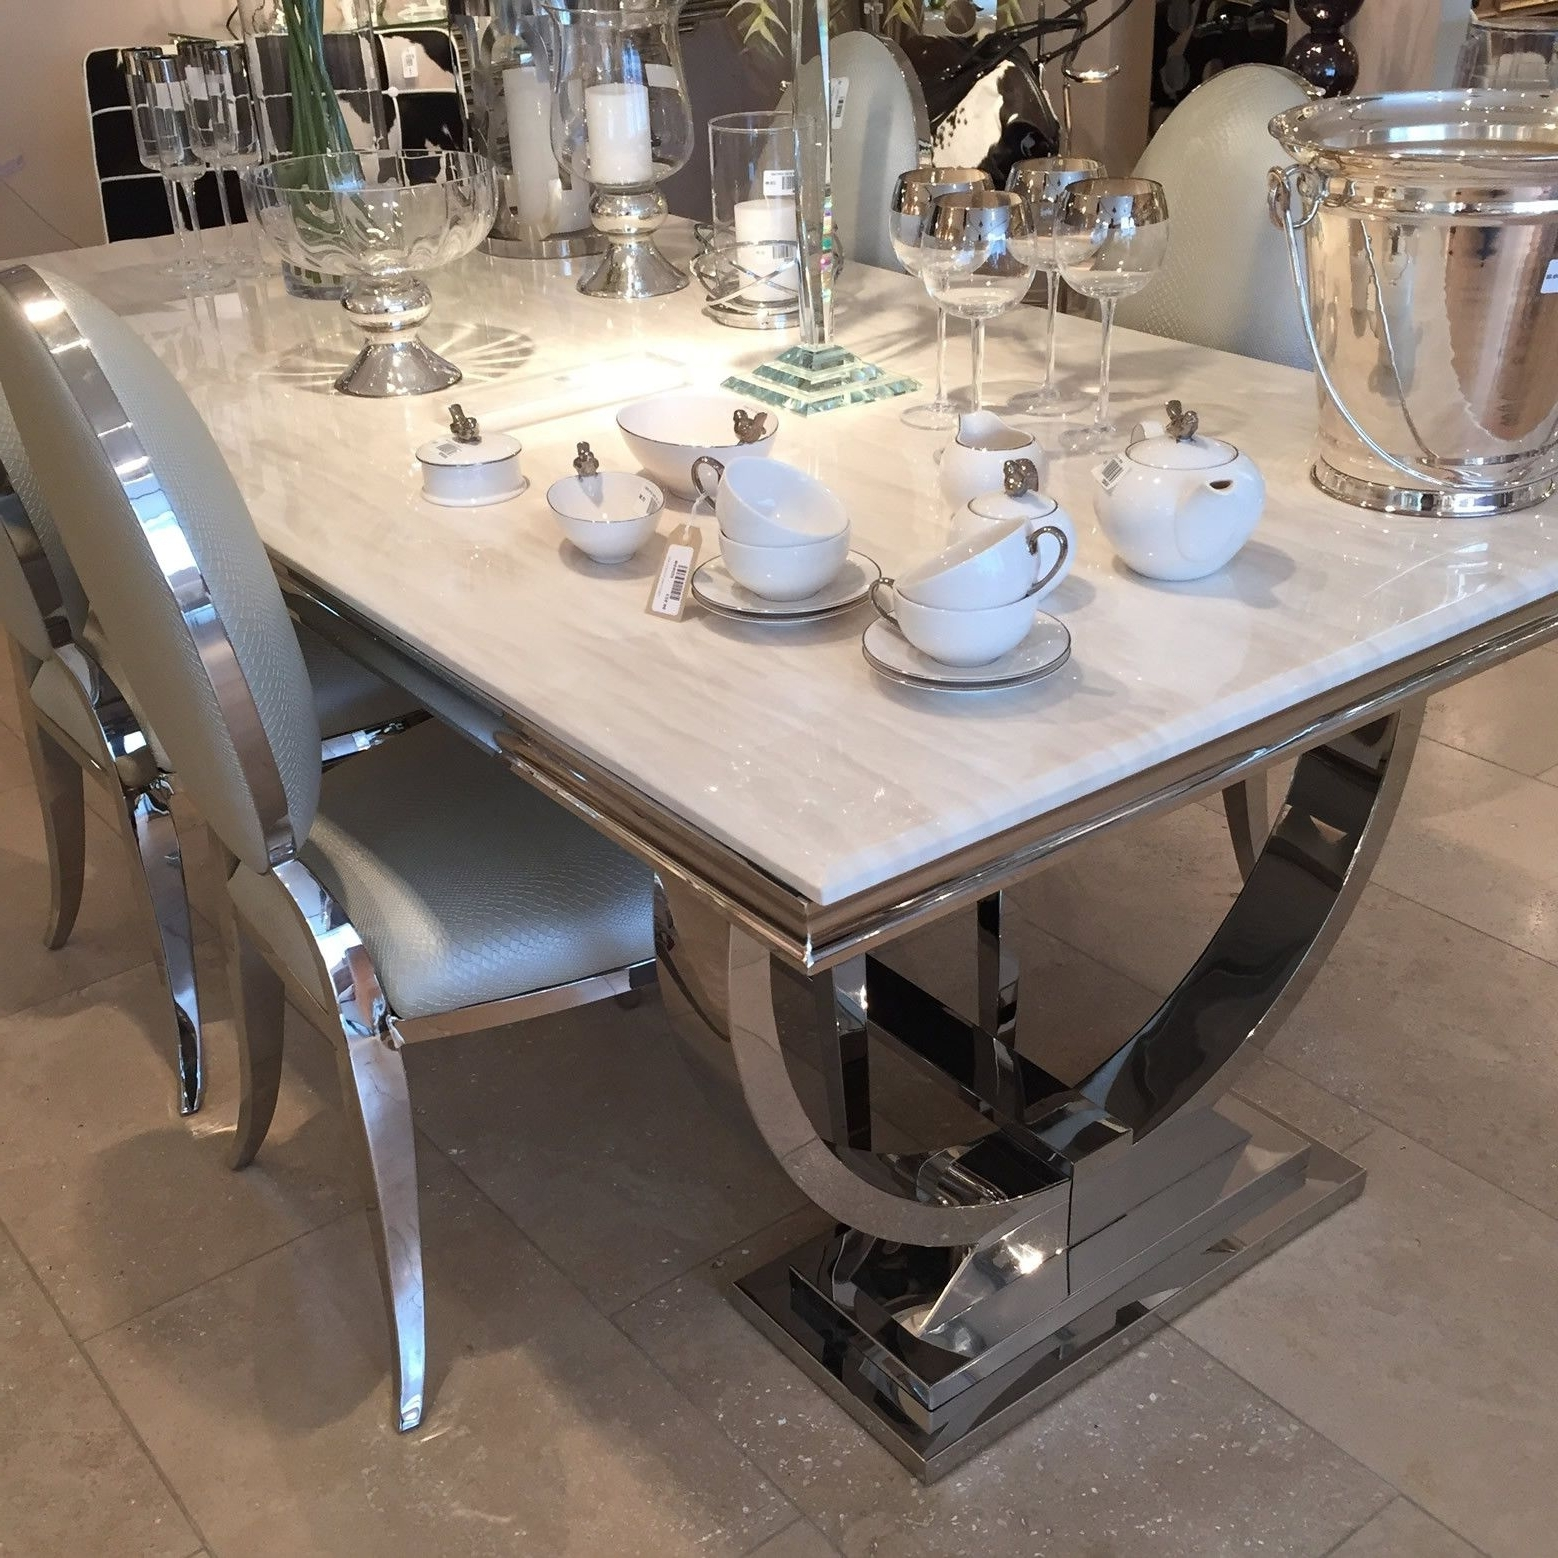 Chrome Dining Sets Throughout Latest Cream Marble And Chrome Dining Table With U Shaped Legs (View 1 of 25)